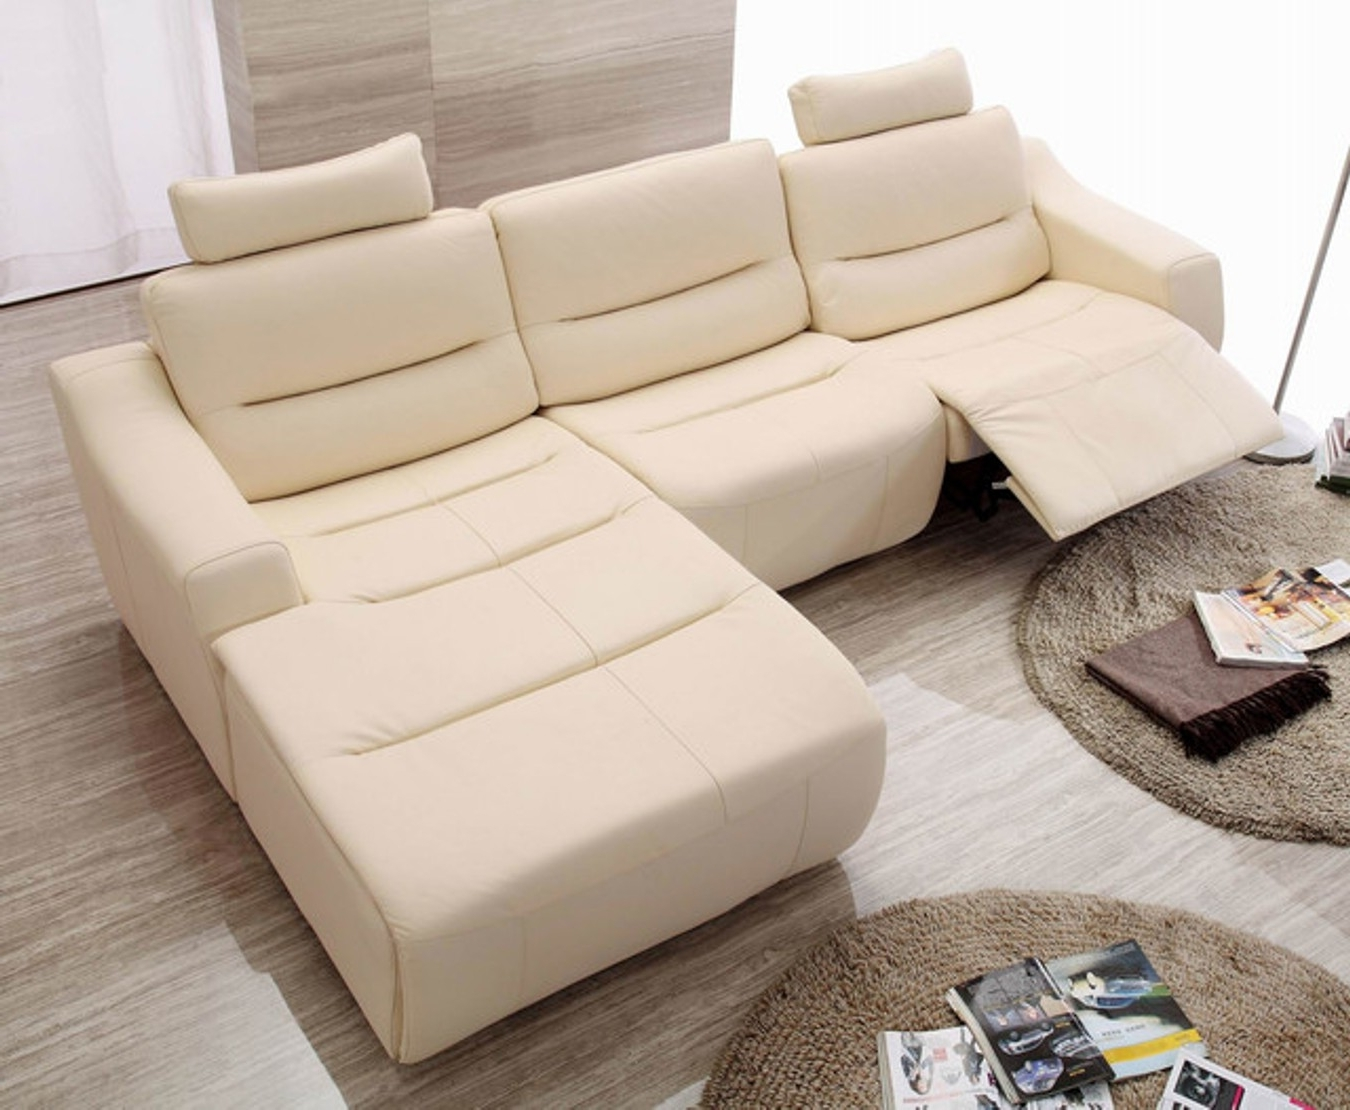 Sectional Sofas With Recliners For Small Spaces – Hotelsbacau With Most Recently Released Sectional Sofas With Recliners For Small Spaces (View 7 of 15)